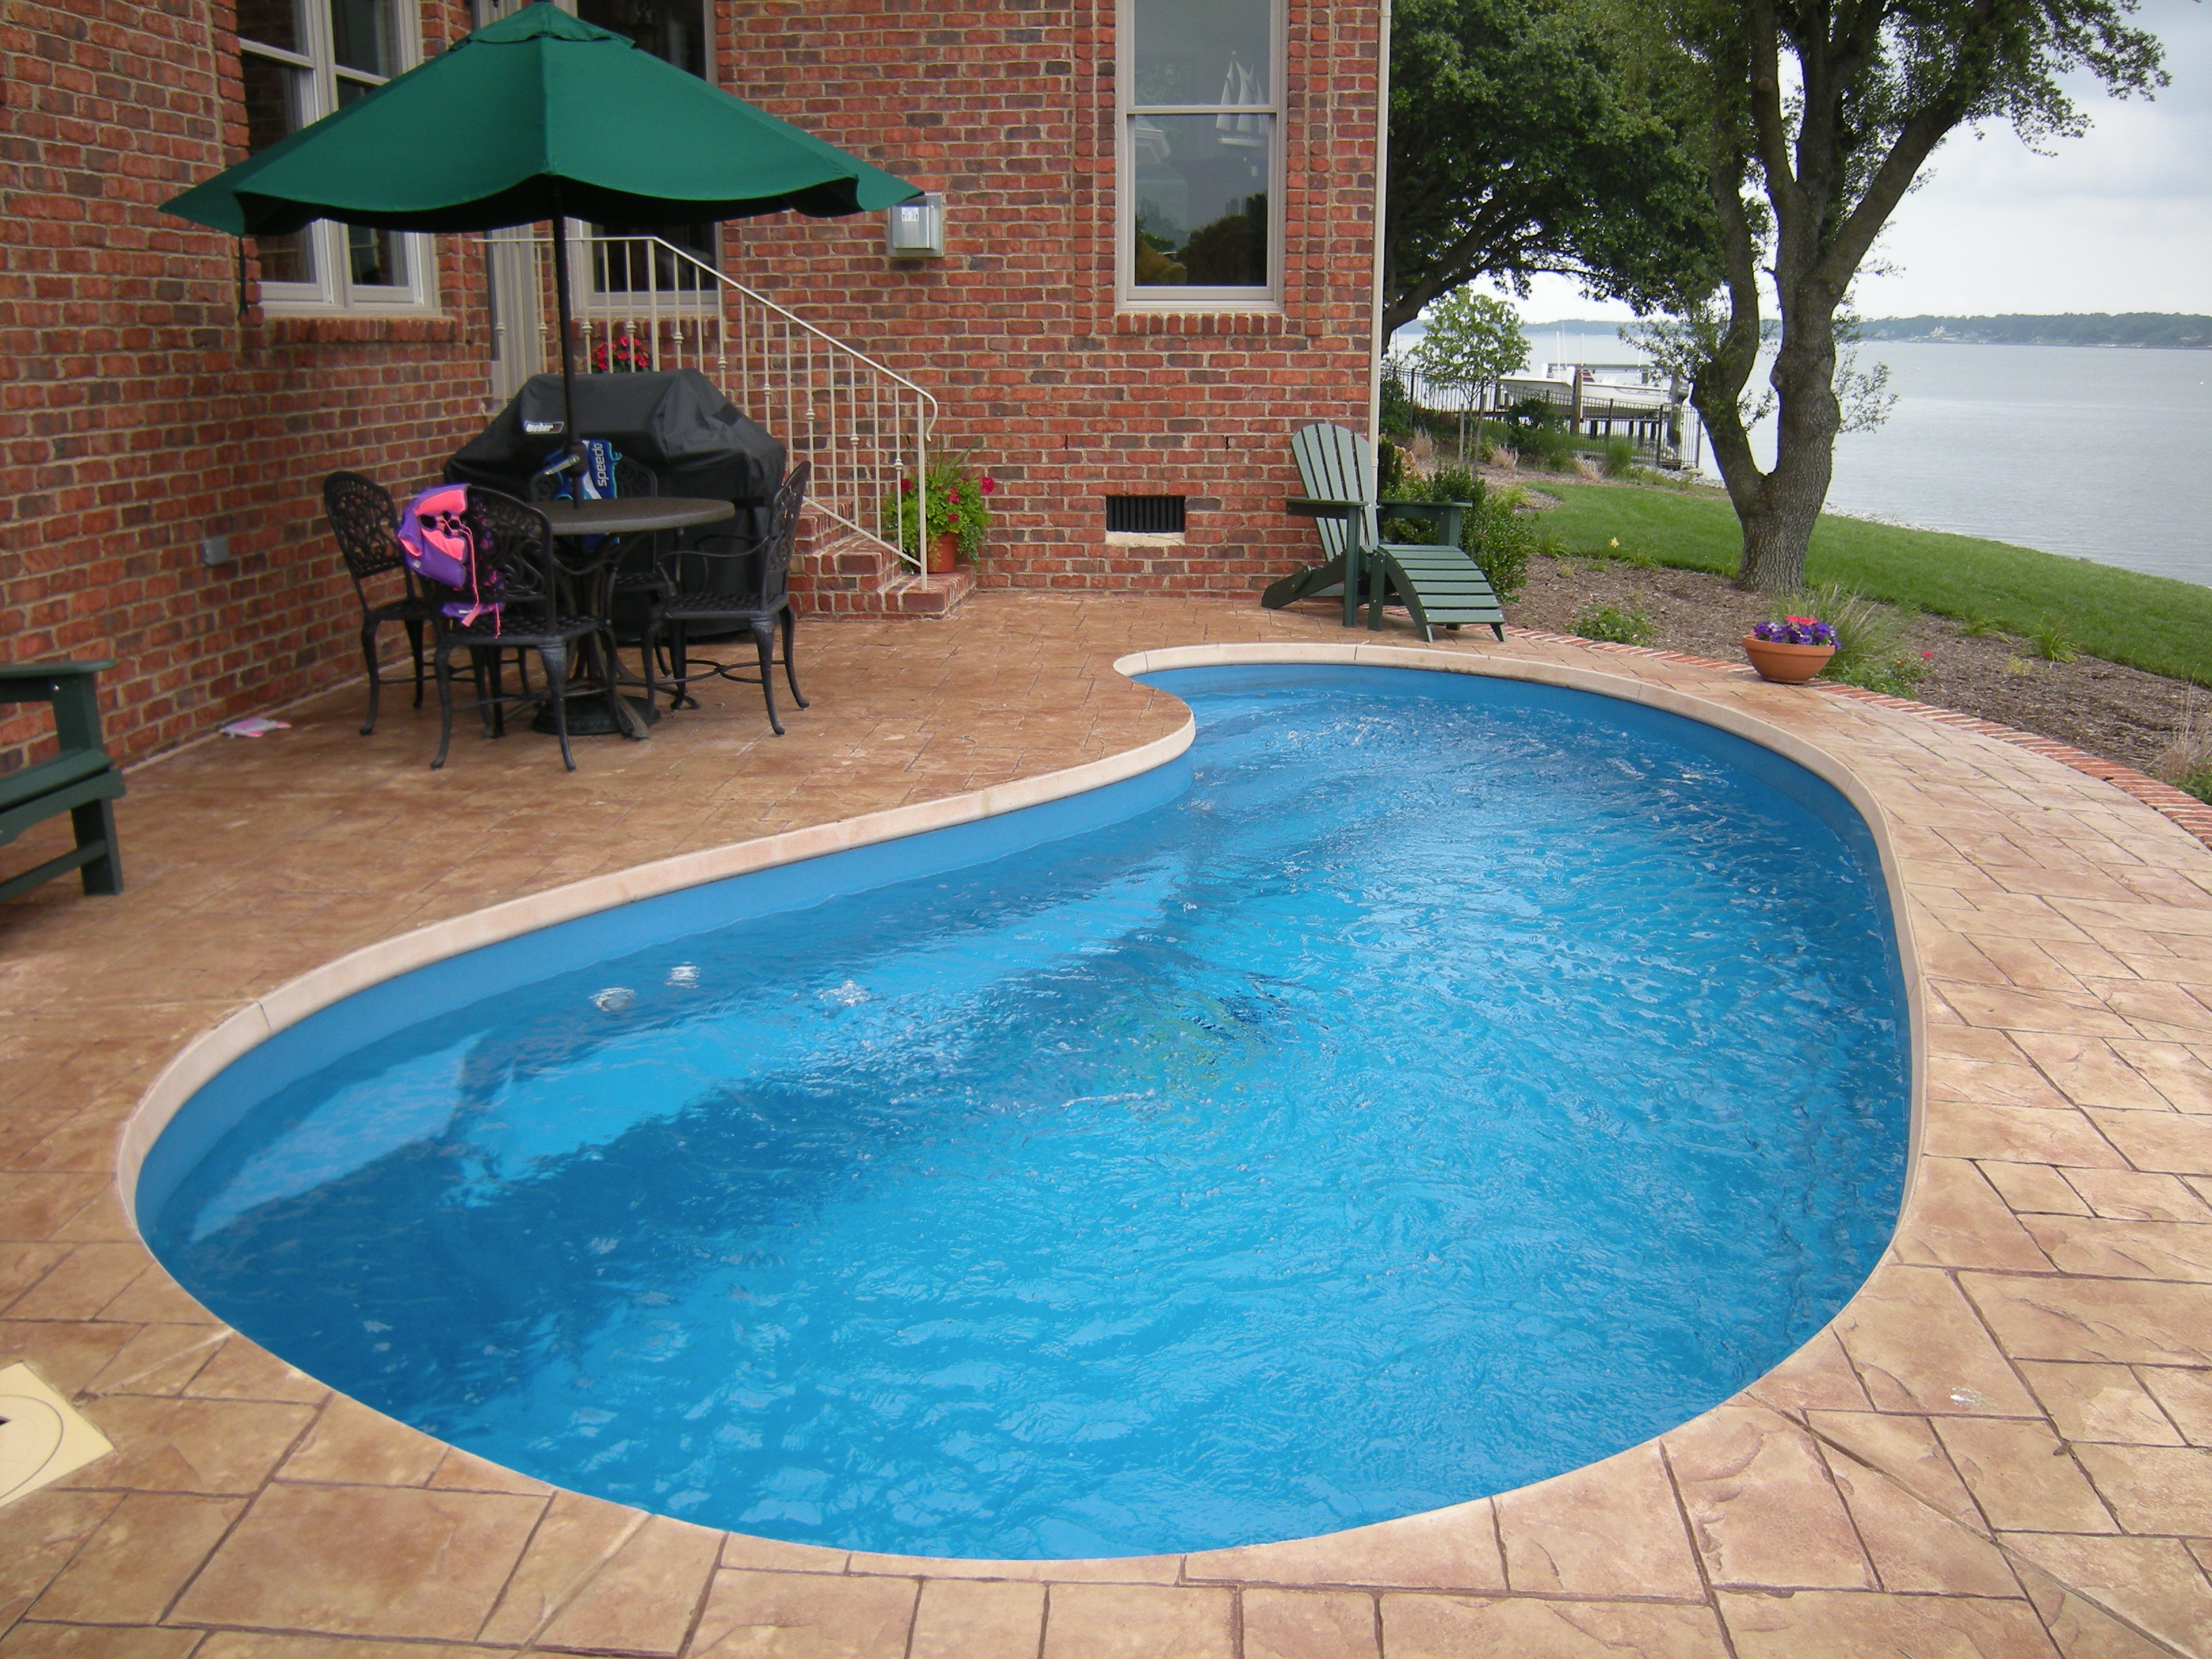 Patio pool 6